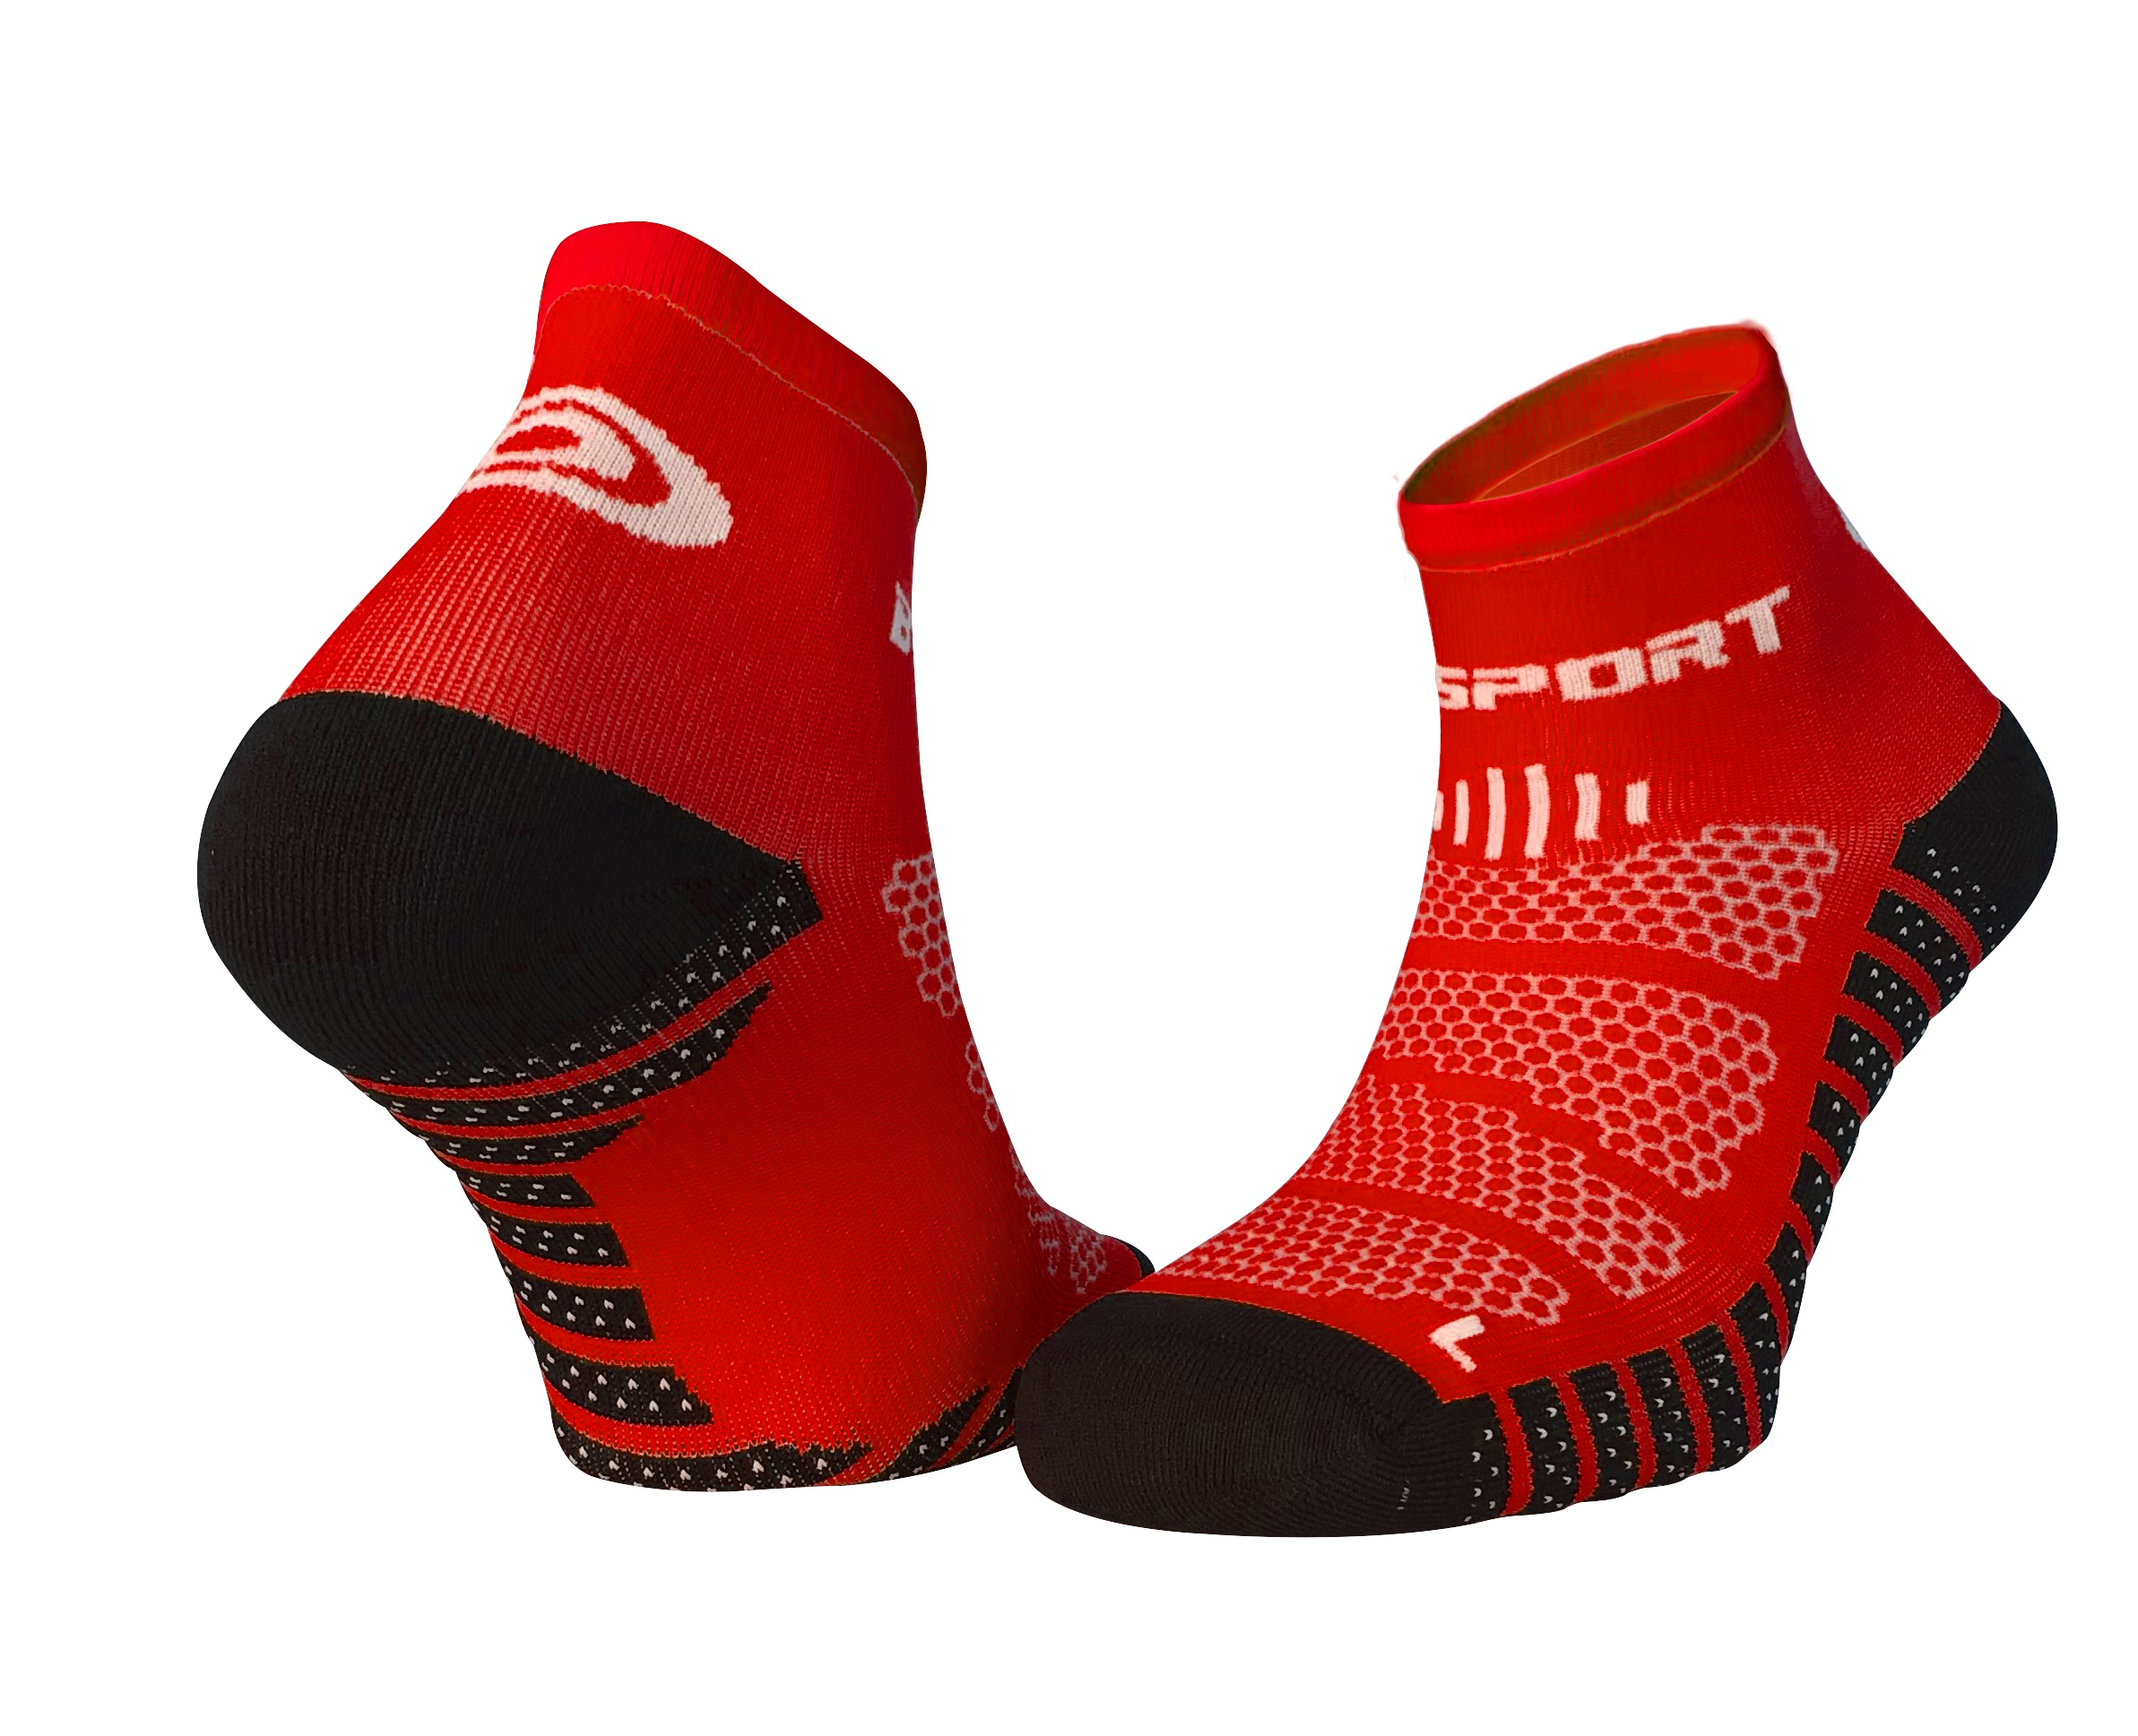 BV SPORT SOCQUETTES SCR ONE EVO ROUGES Chaussettes Running BV Sport